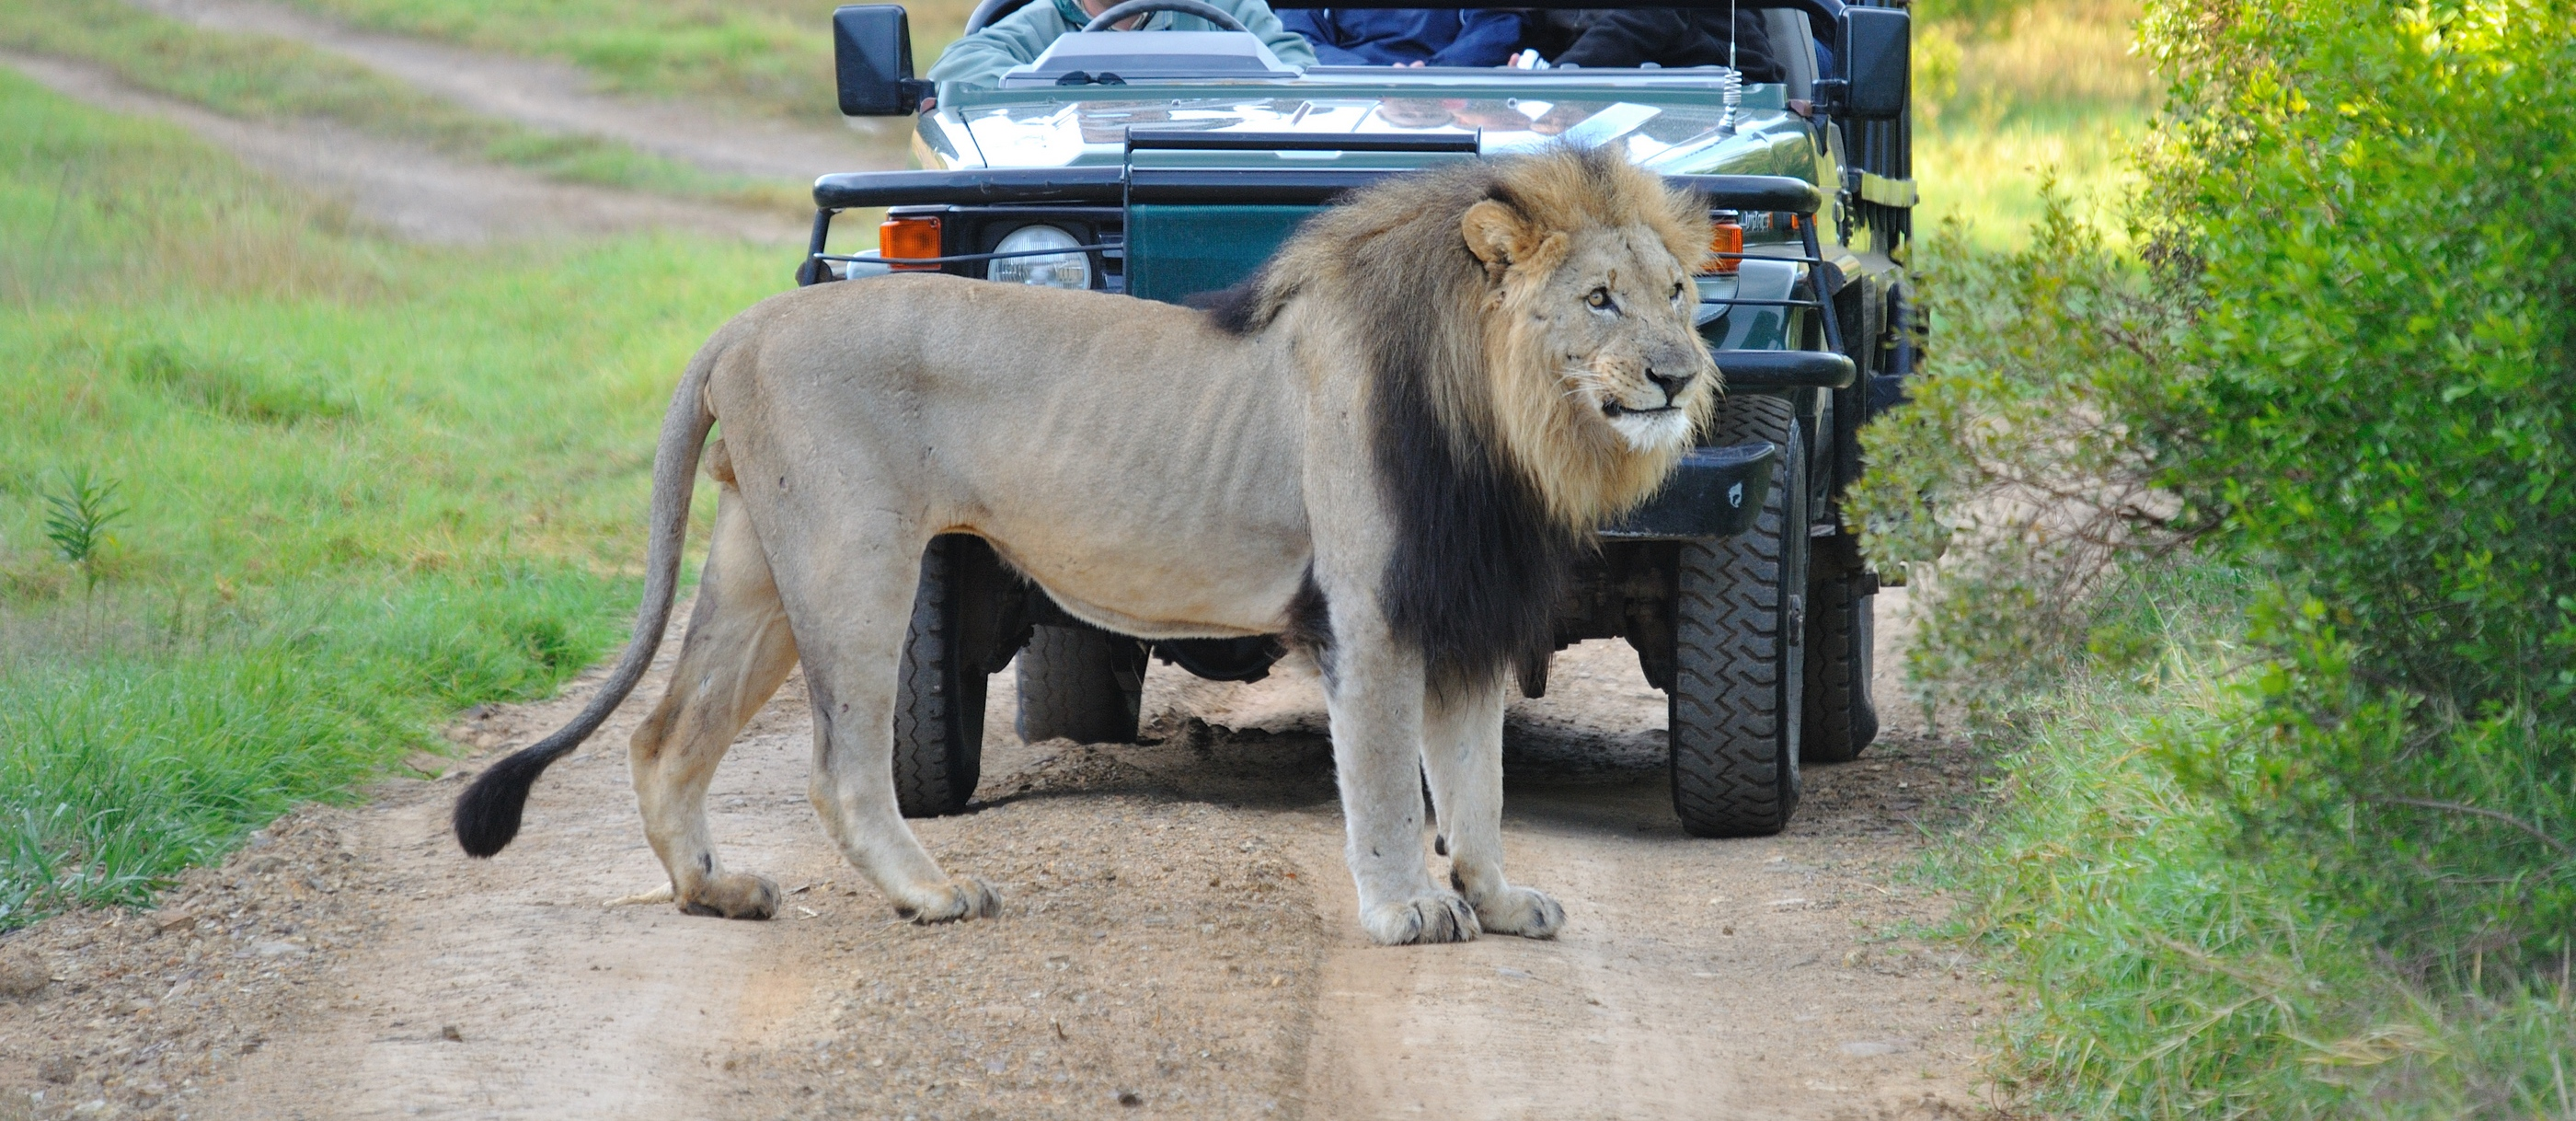 34-South-Tours-Safari-Tour-Lion1